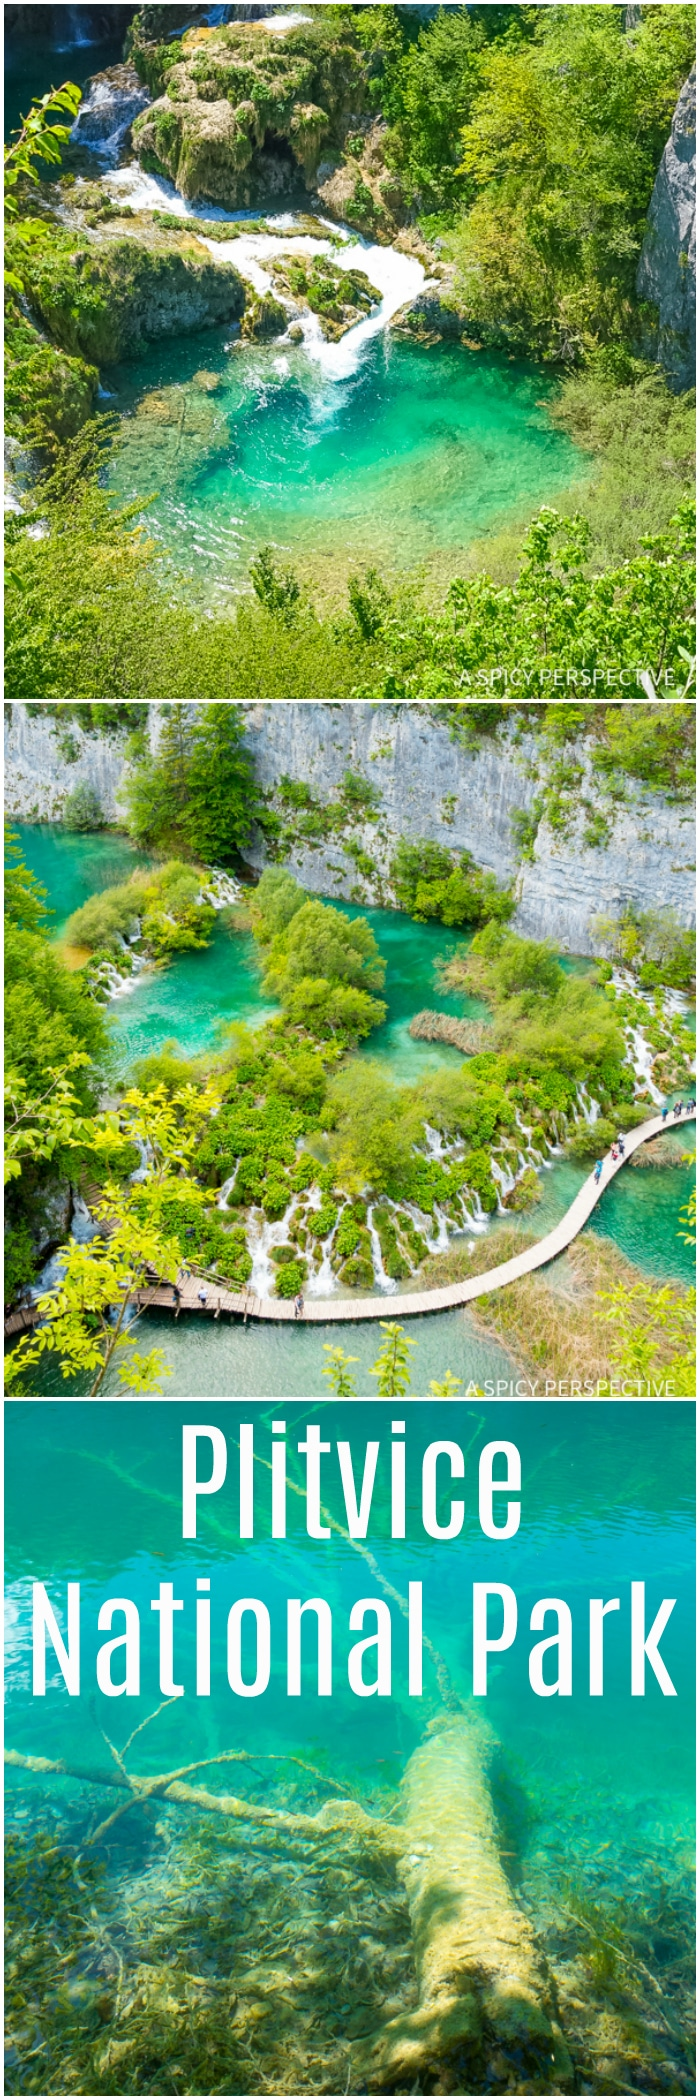 Awe-Inspiring Plitvice Lakes National Parks in Croatia - Must See! #travel